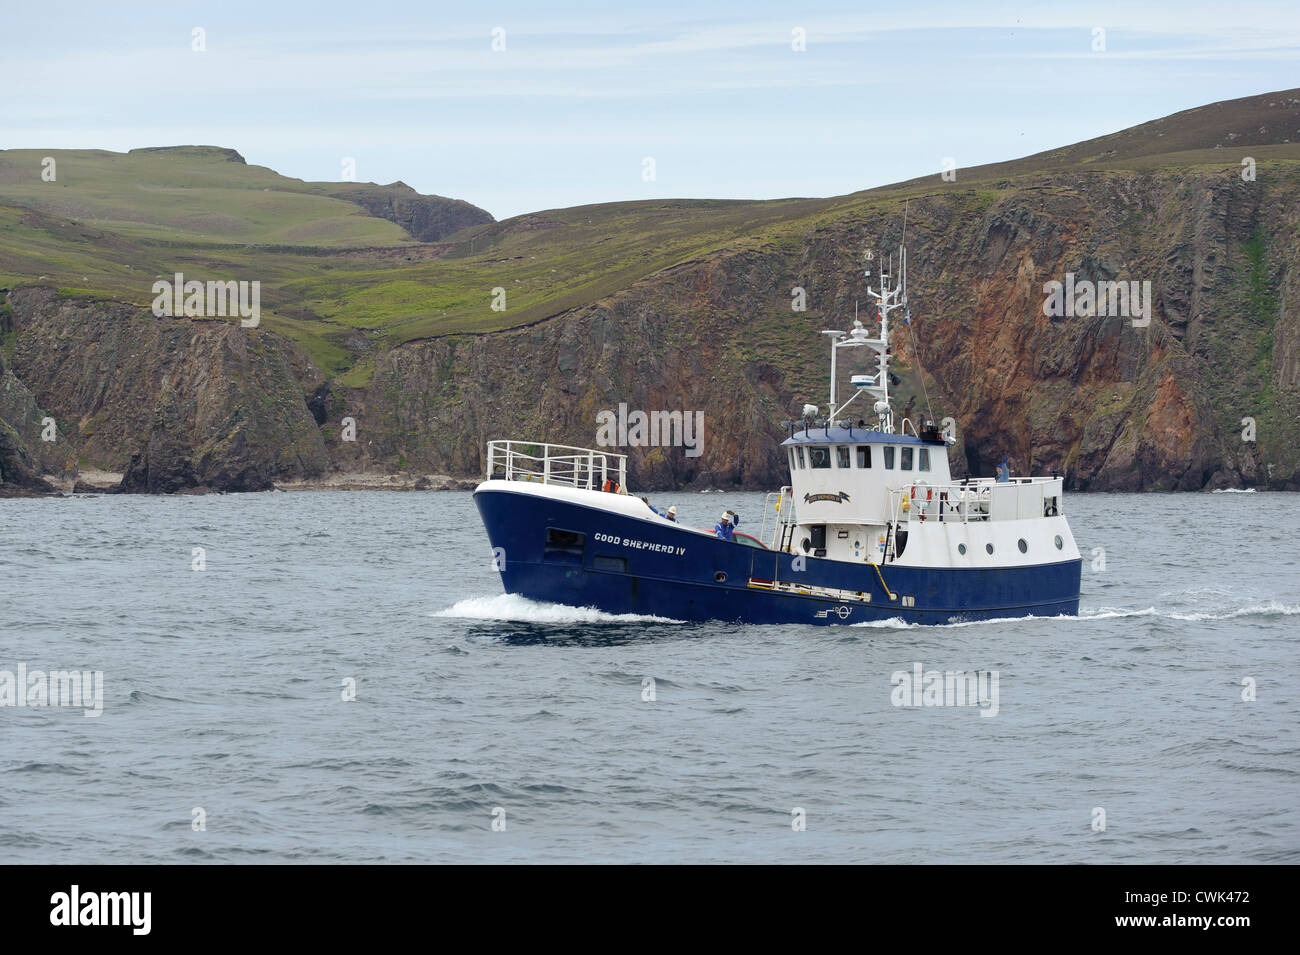 Mail boat Good Shepherd IV approaching North Haven on Fair Isle in the Shetland Islands. June 2012. - Stock Image